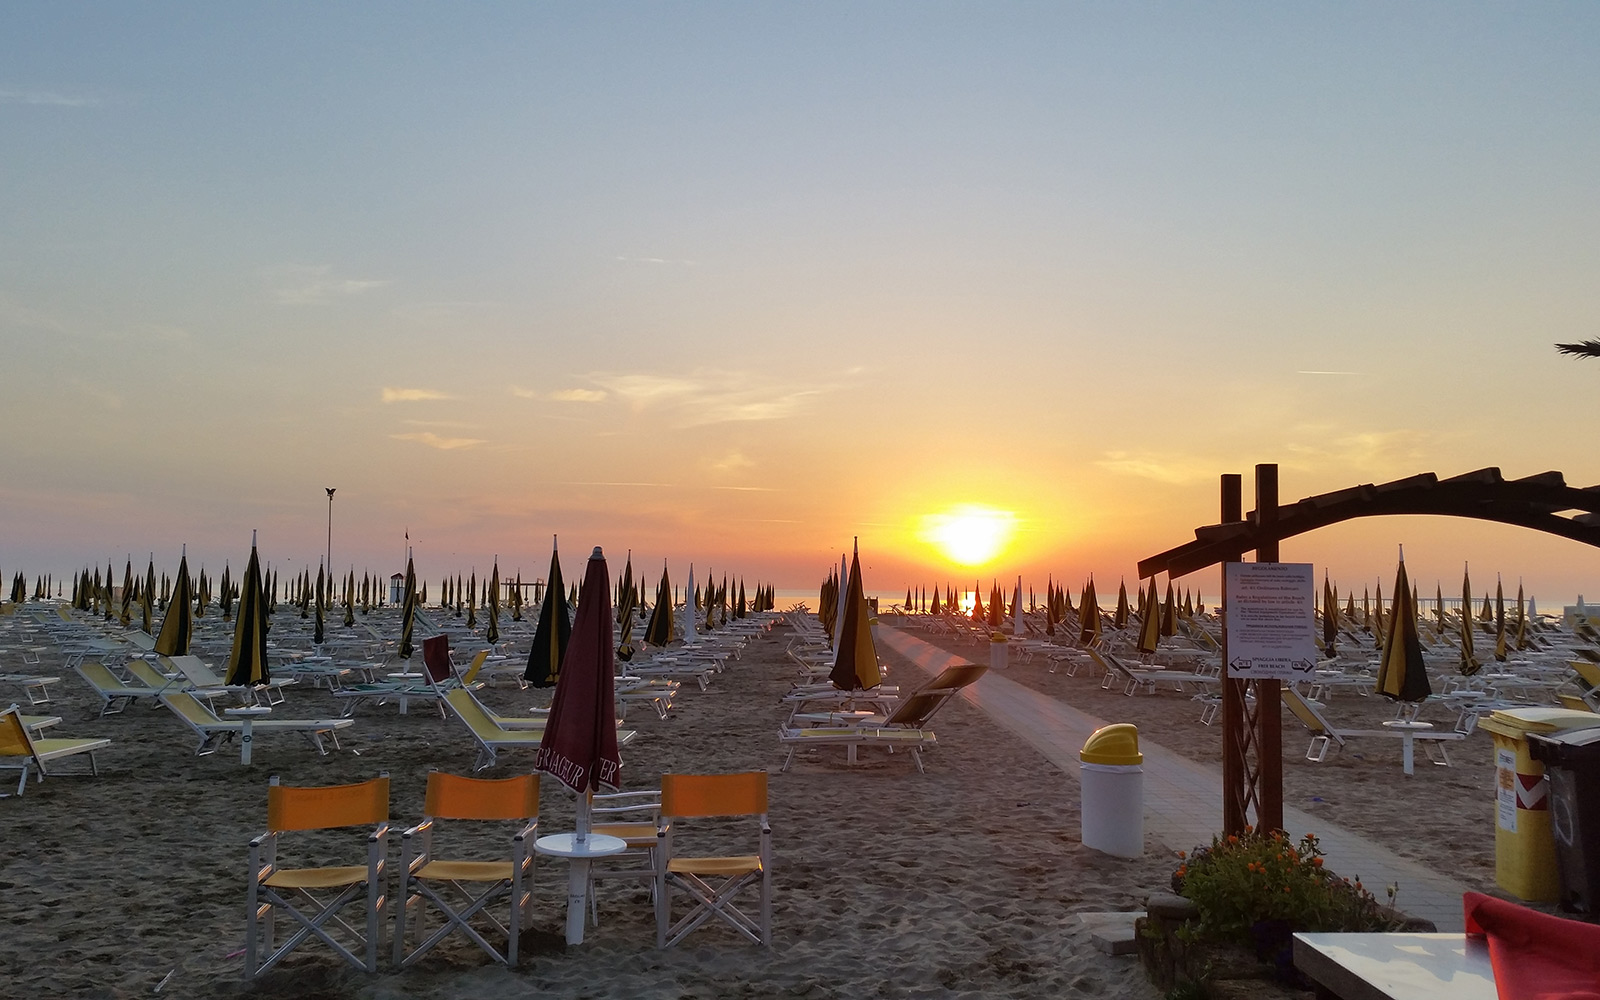 Head to the Coast and Soak Up Some Culture at Hotel Soleblu in Rimini - Rimini - Visit Italy